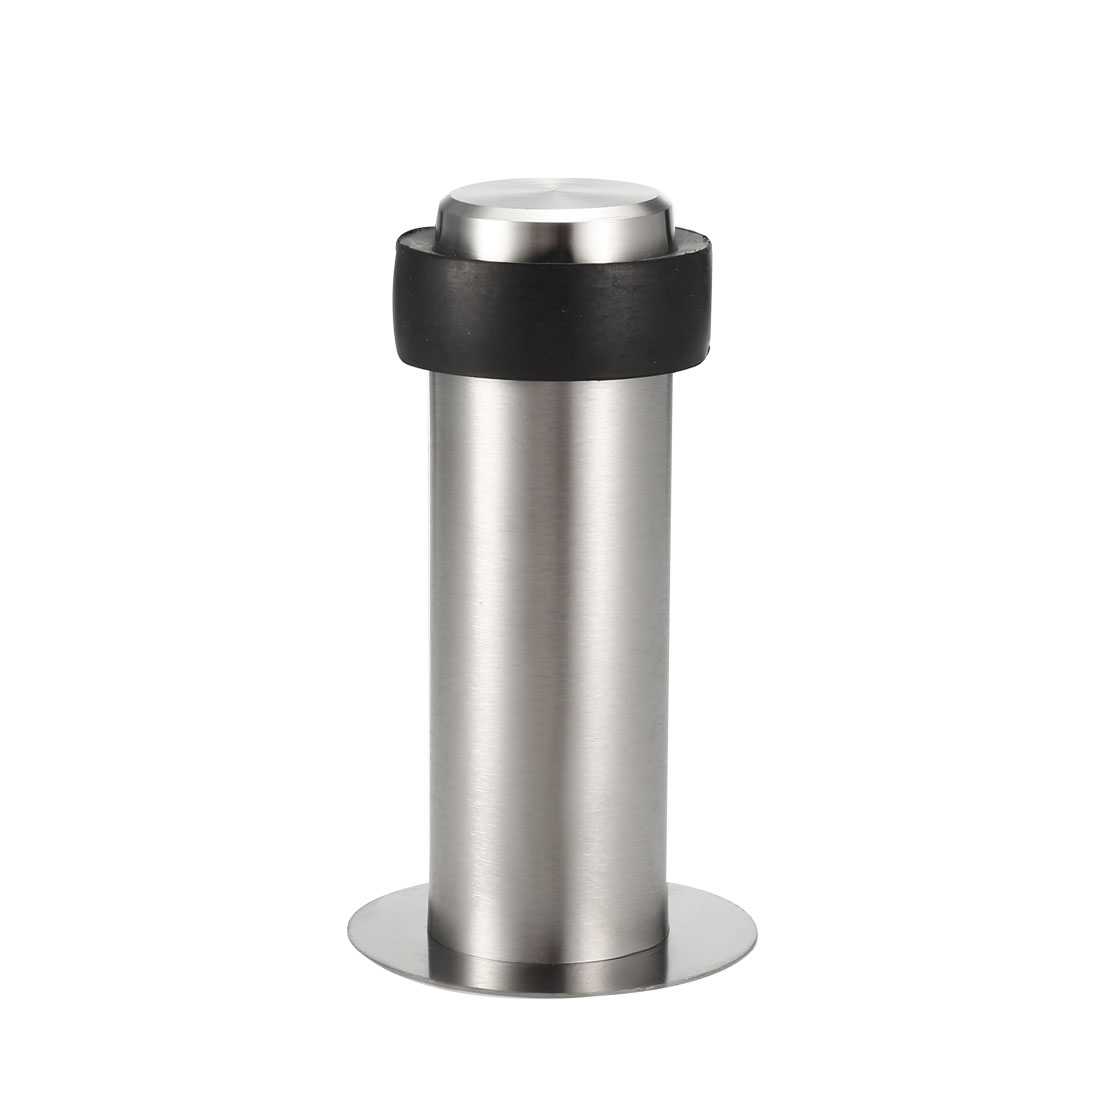 Stainless Steel Door Stopper Cylindrical Floor Mount Adhesive Sheet 100mm Height